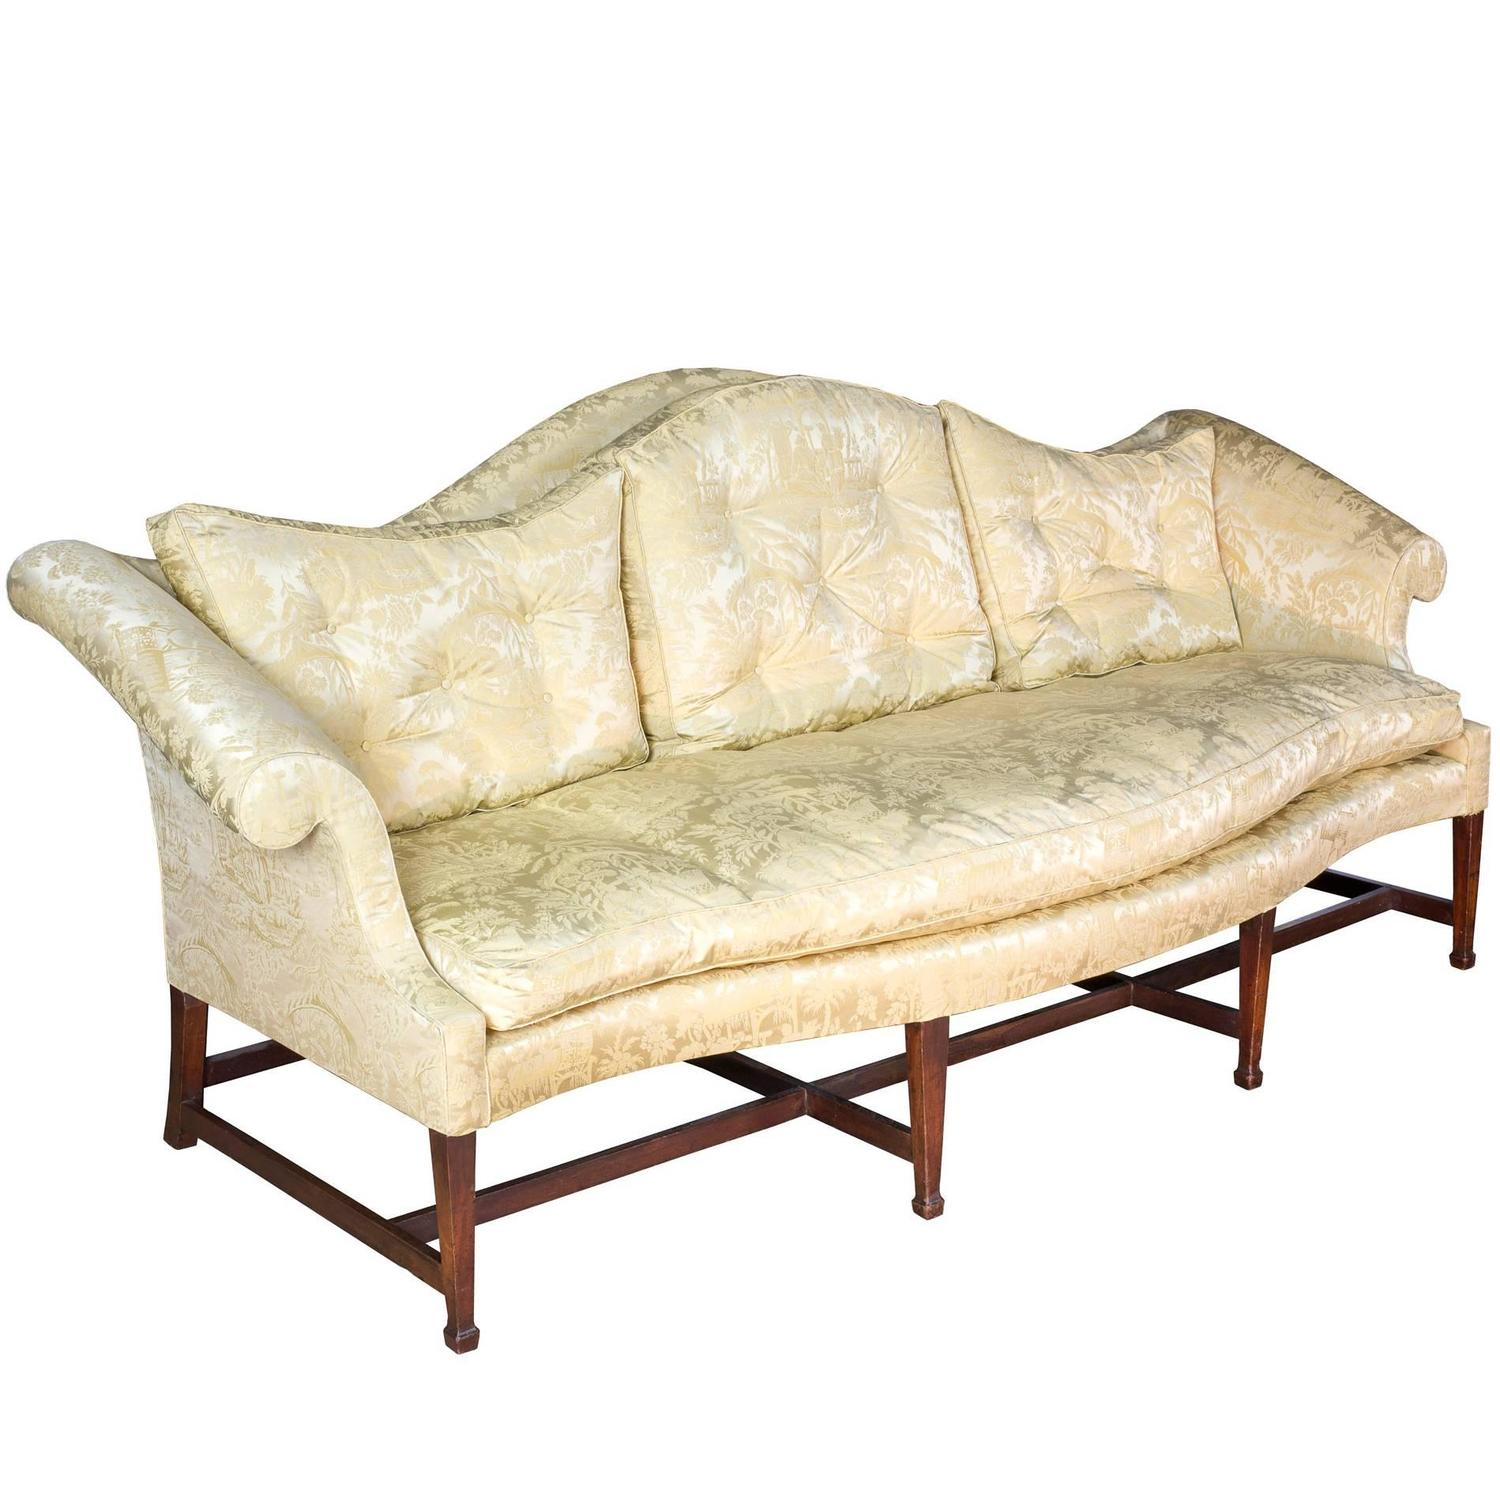 Mahogany Hepplewhite Camelback Sofa With Serpentine Back And Seat With Spade Fee For Sale At 1stdibs